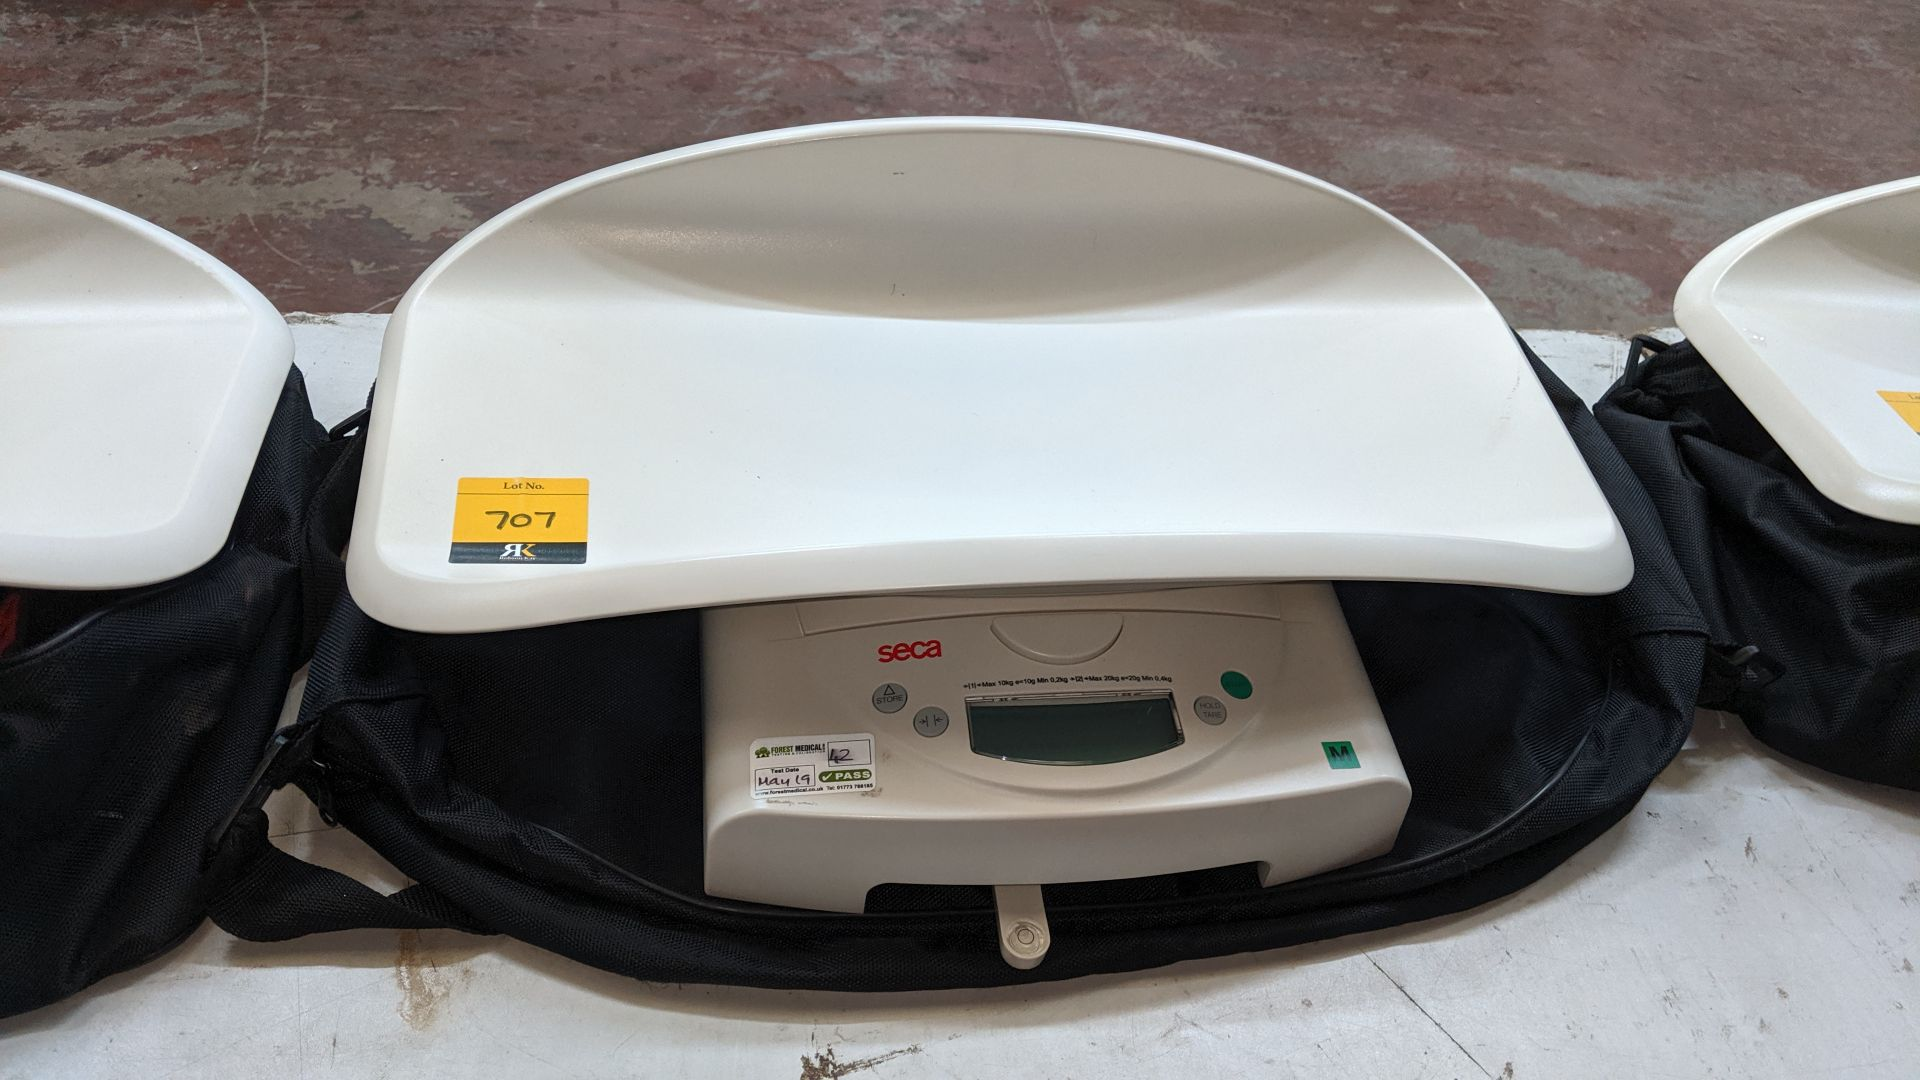 Lot 707 - Seca model 384 baby scales max. capacity 20kg. This is one of a large number of lots used/owned by